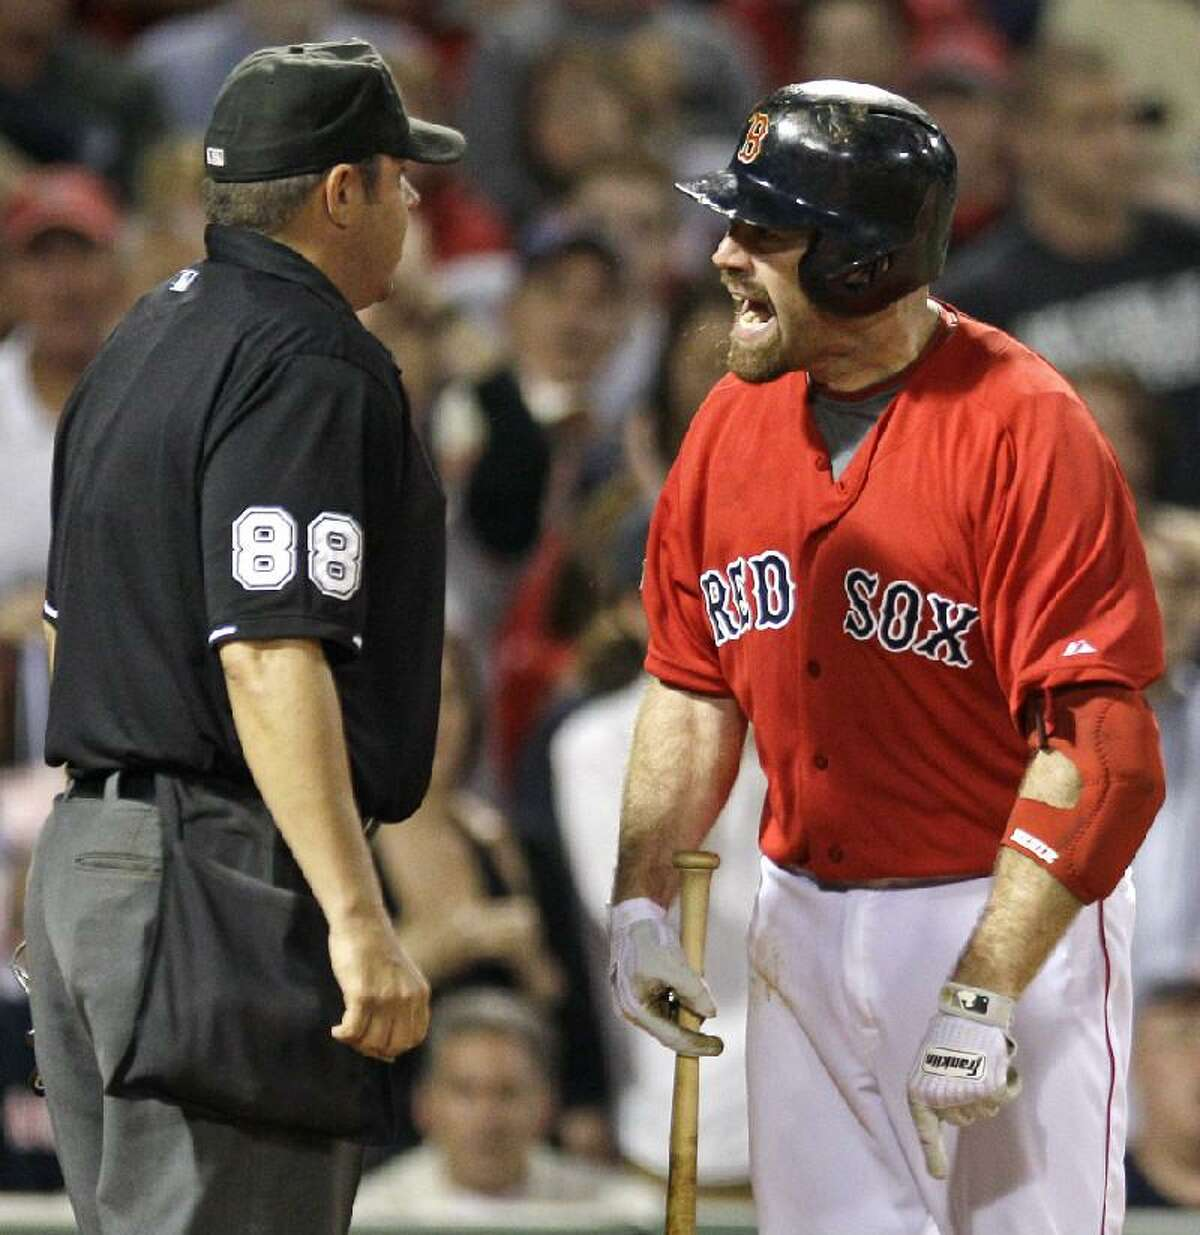 ASSOCIATED PRESS Boston Red Sox third baseman Kevin Youkilis argues with home plate umpire Doug Eddings after being called out looking with the bases loaded against the Washington Nationals in the sixth inning of Friday night's game at Fenway Park in Boston. Youkilis was ejected during the argument.